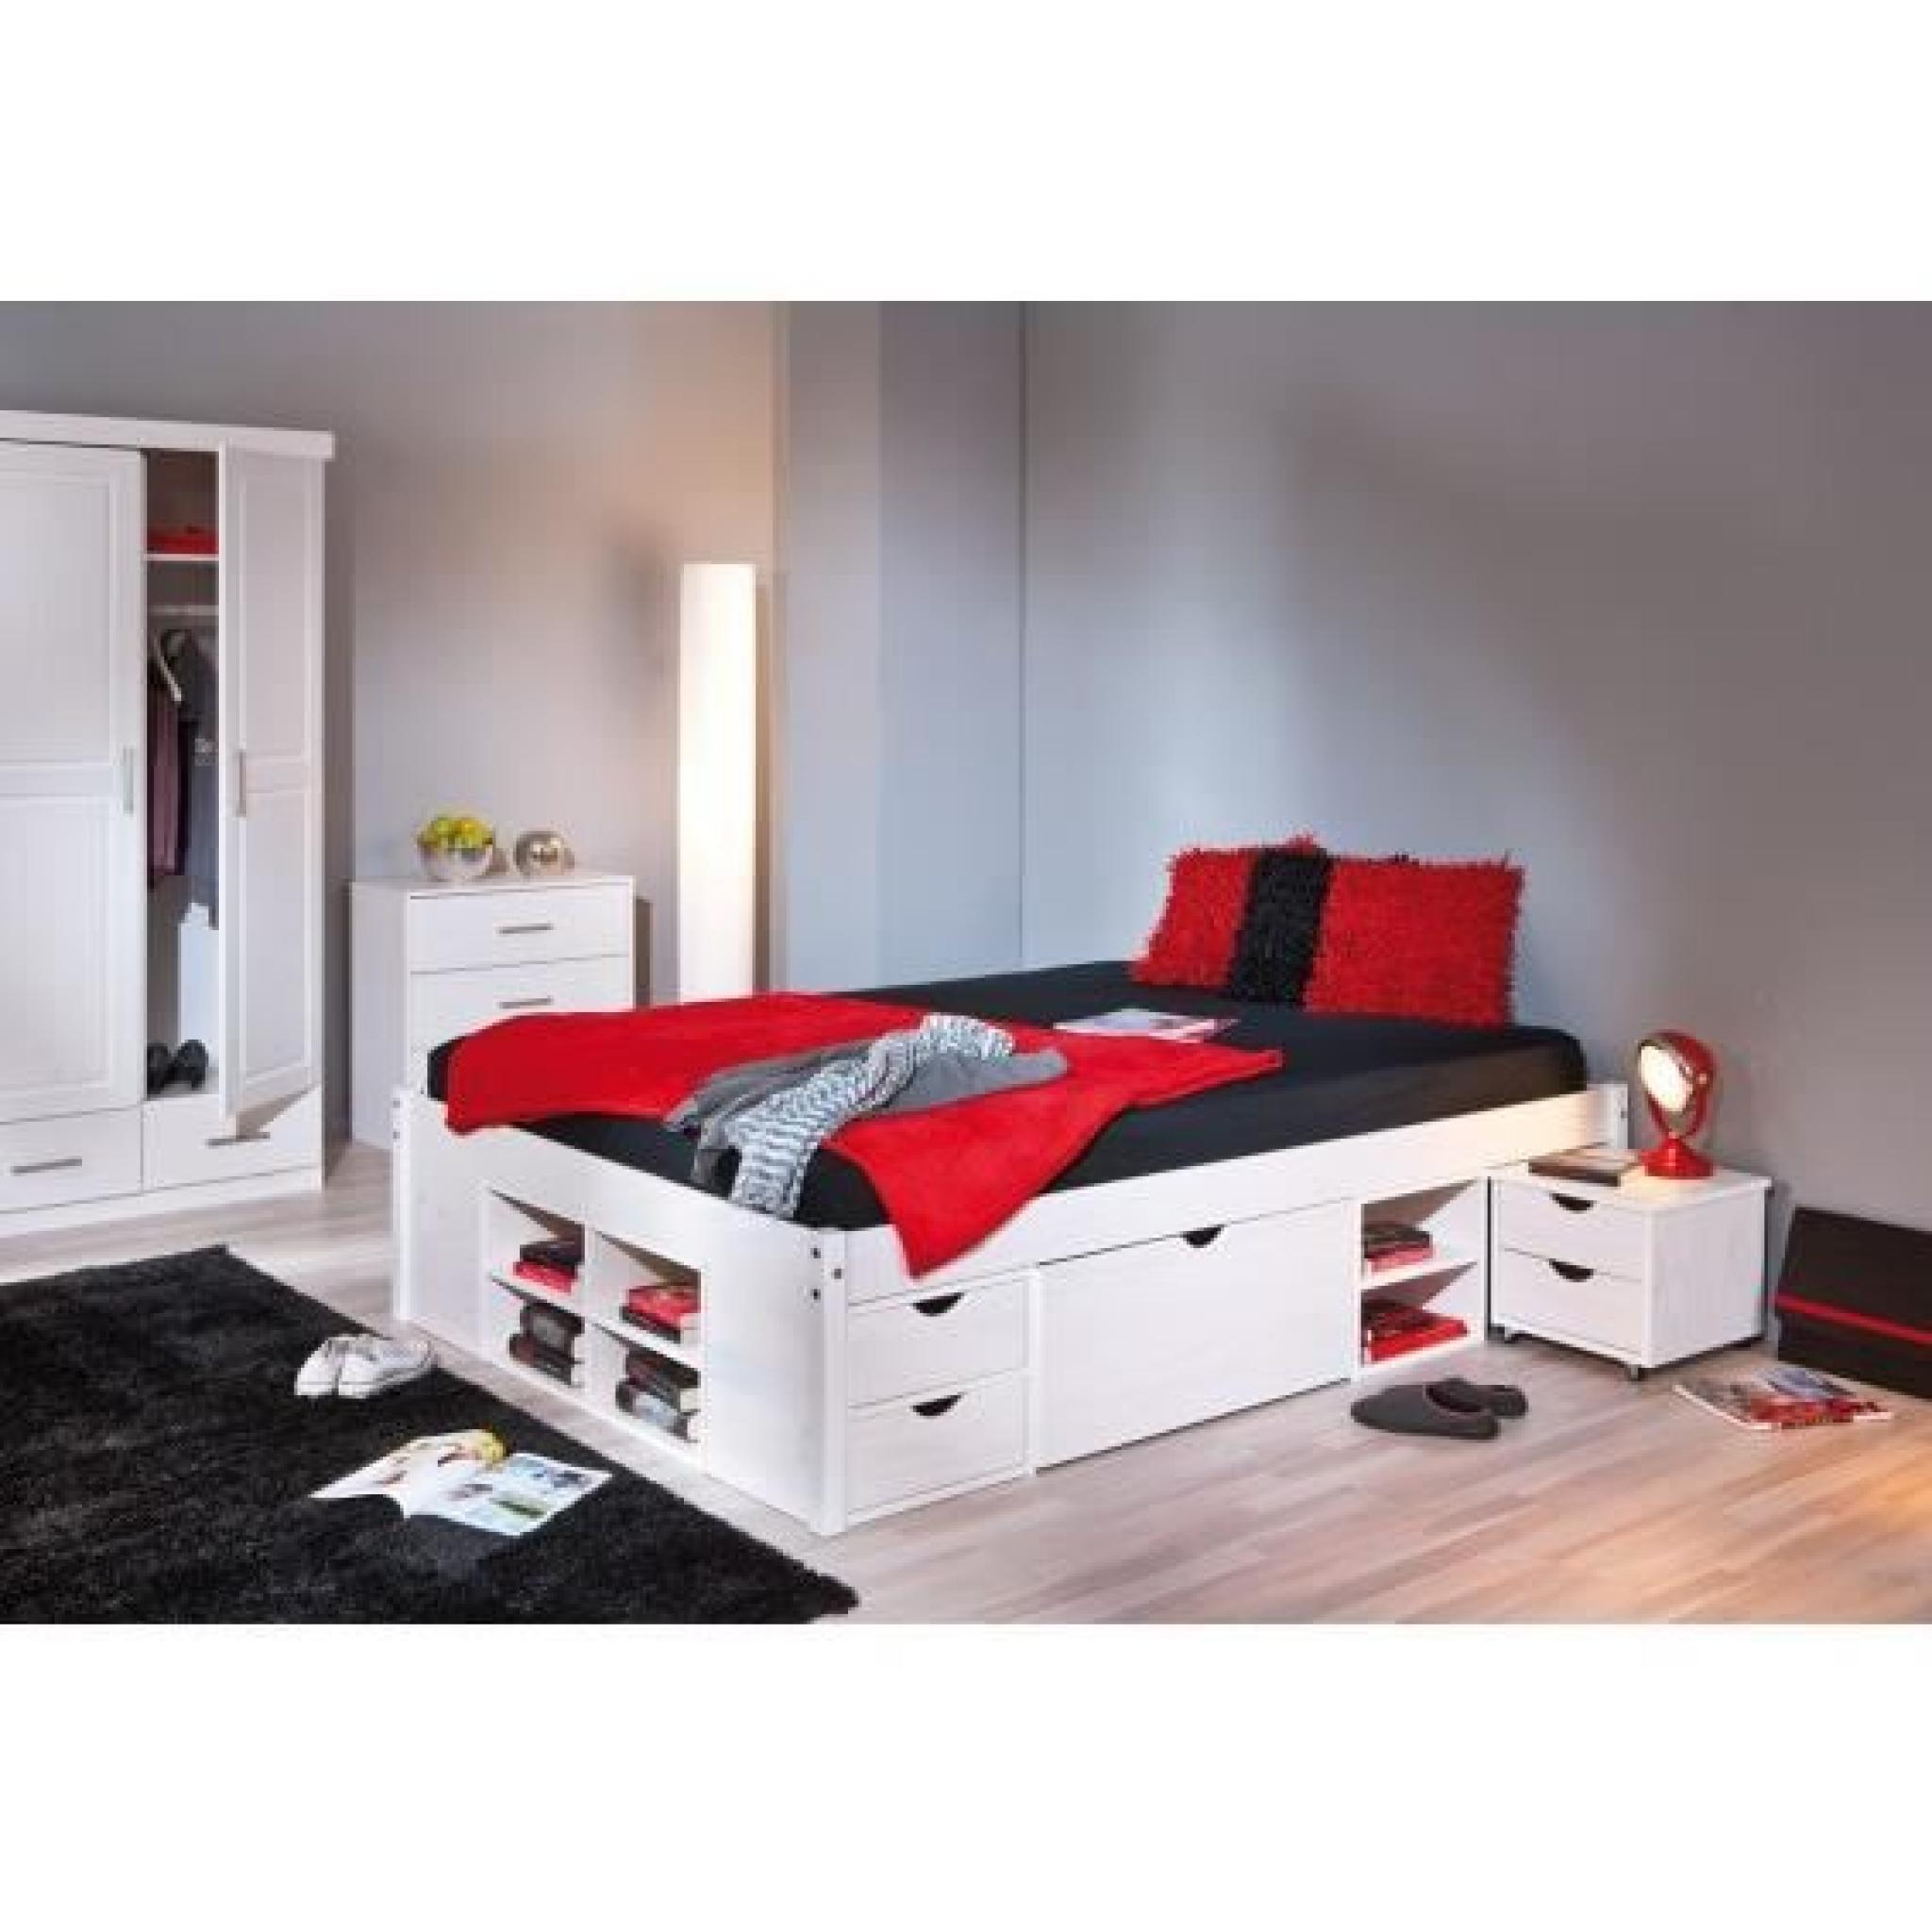 alaska lit 160x200 cm multi rangement achat vente lit pas cher couleur et. Black Bedroom Furniture Sets. Home Design Ideas